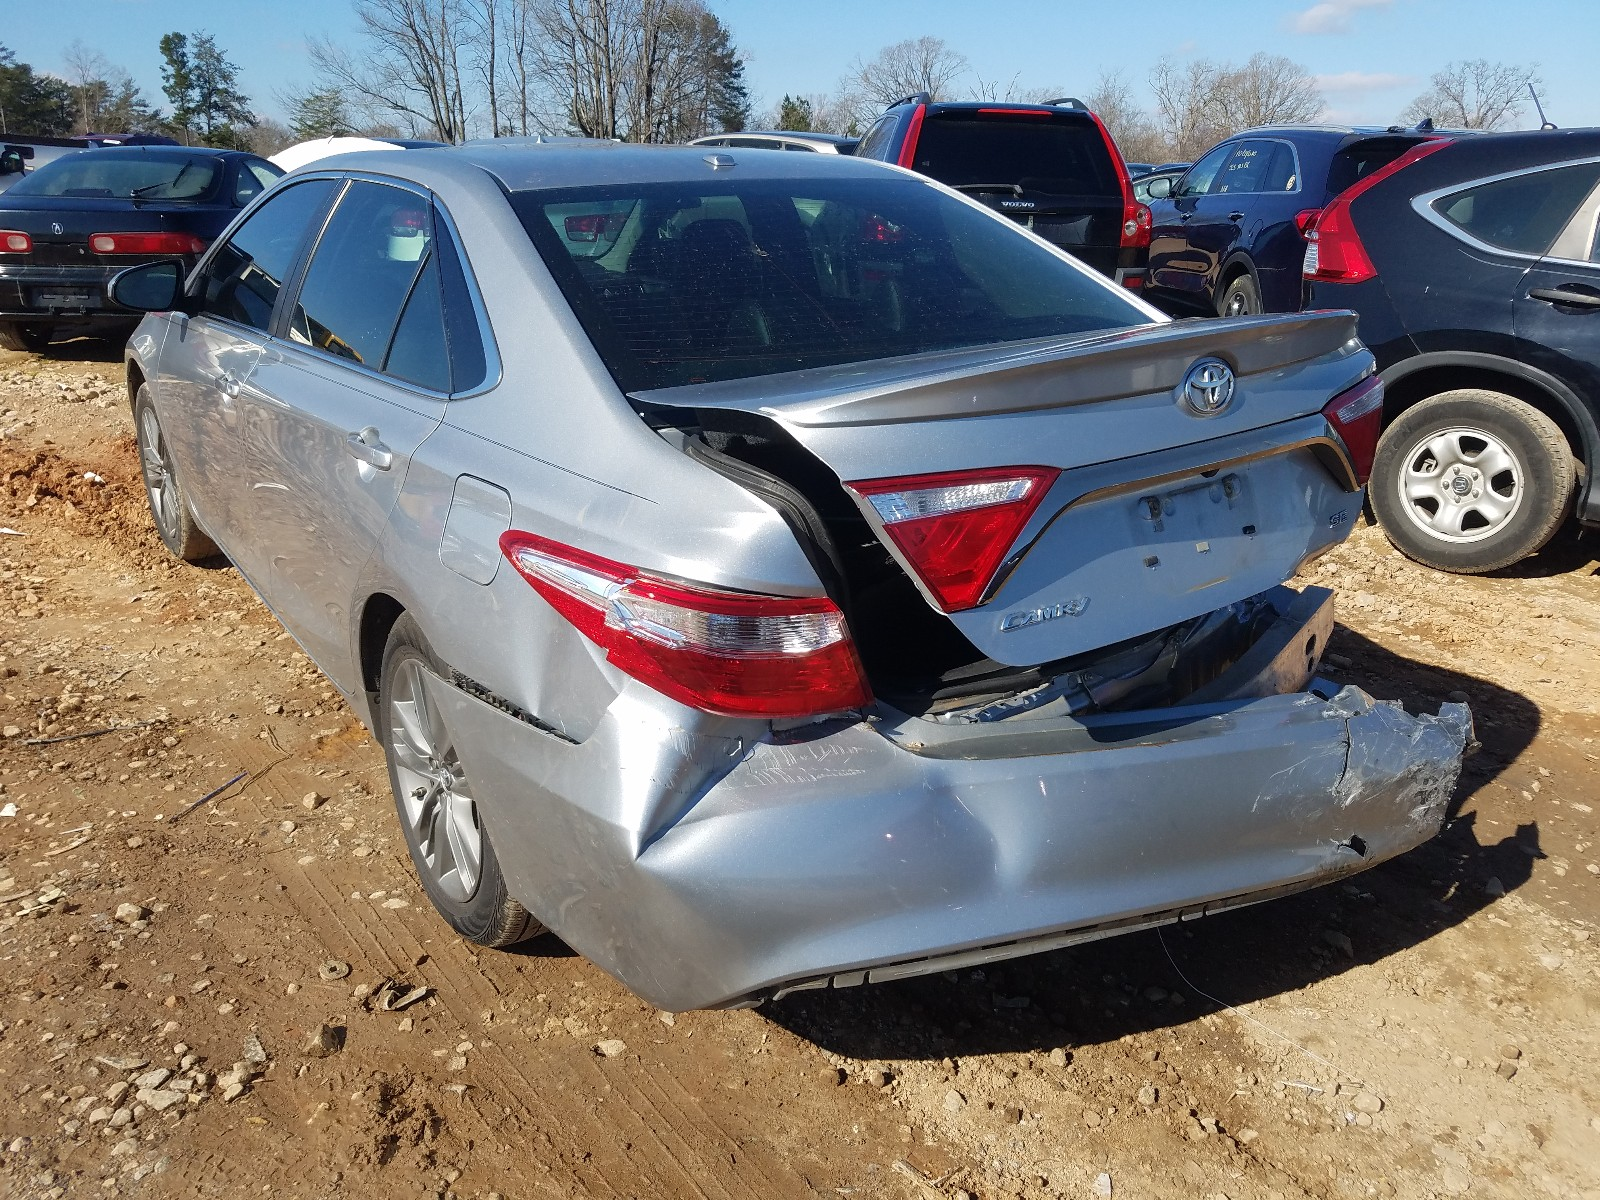 4T1BF1FK0FU912386 - 2015 Toyota Camry Le 2.5L [Angle] View